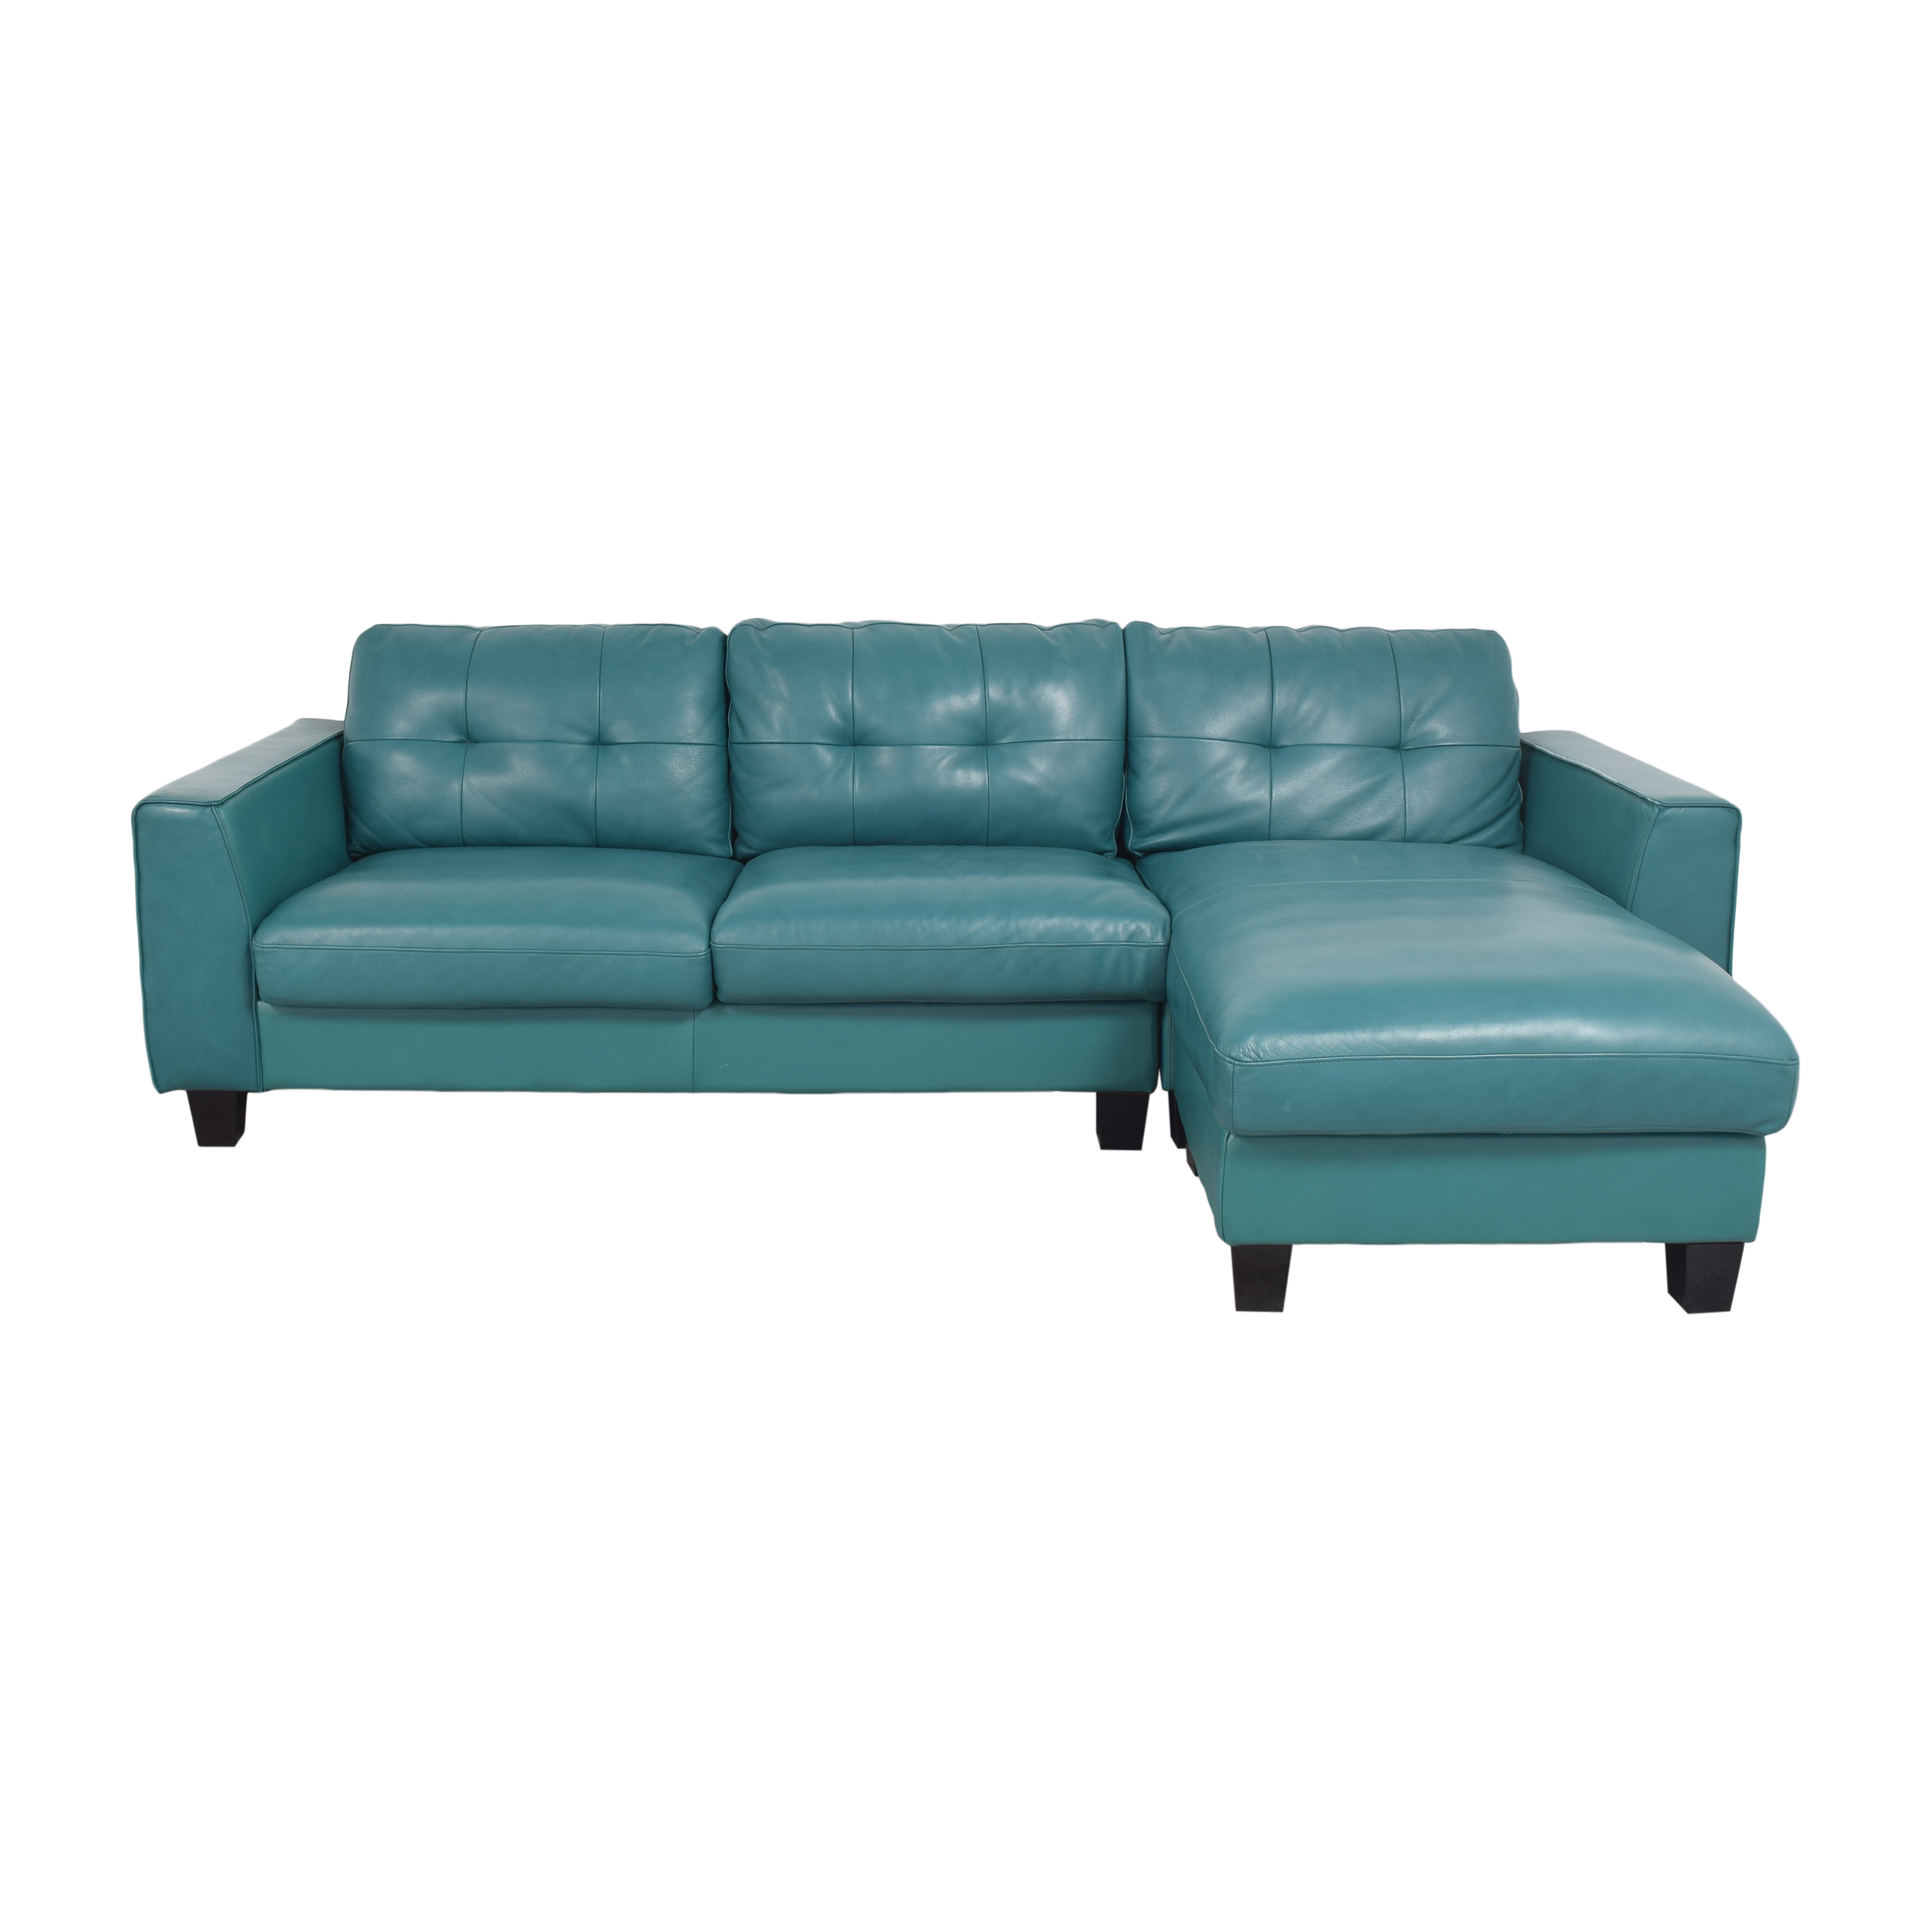 Costco Costco Sectional Sofa with Chaise on sale